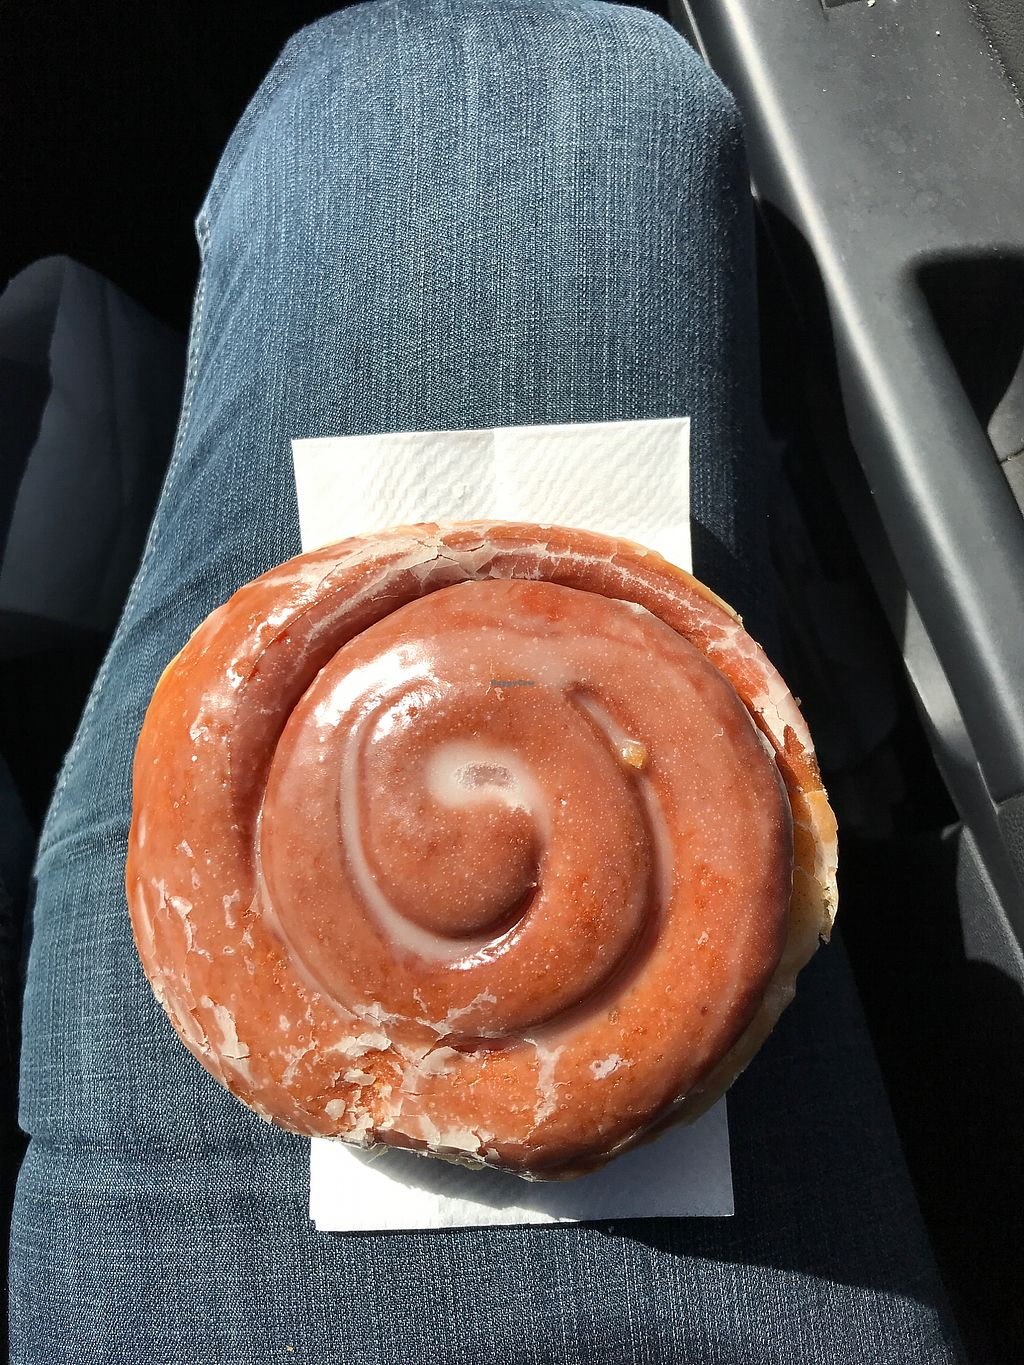 """Photo of Donut Xpress  by <a href=""""/members/profile/glassesgirl79"""">glassesgirl79</a> <br/>Vegan cinnamon roll  <br/> March 23, 2018  - <a href='/contact/abuse/image/85755/374936'>Report</a>"""